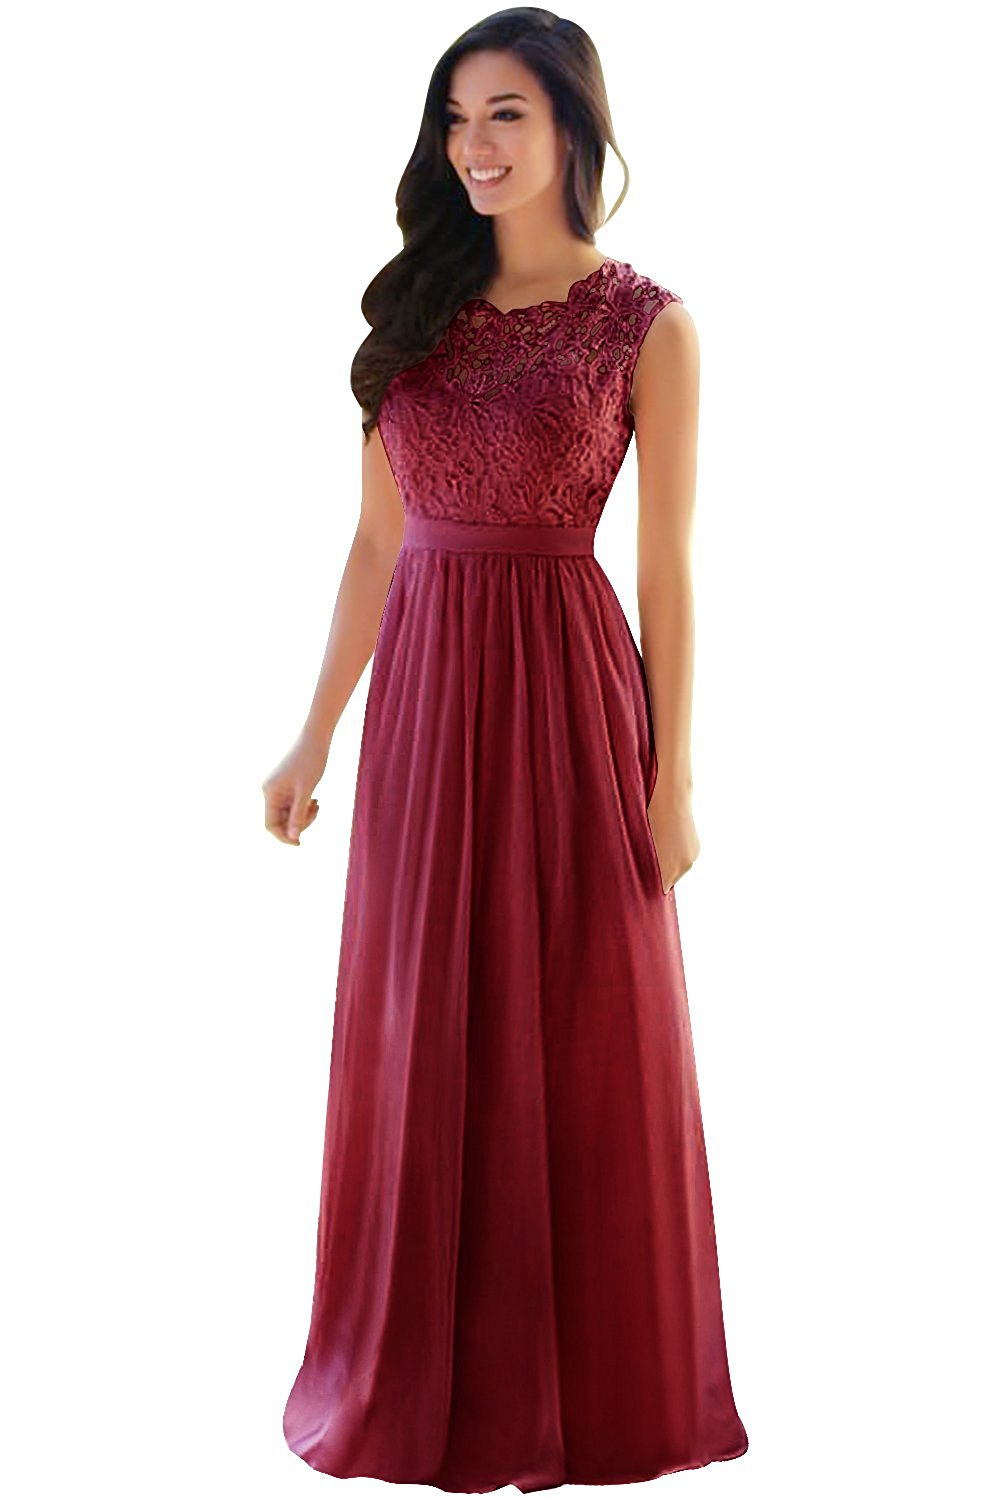 fe869e98e1 Lace Chiffon Bridesmaid Dresses Long 2017 Sheer Prom Evening Gowns By  MisShow at Amazon Women's Clothing ...